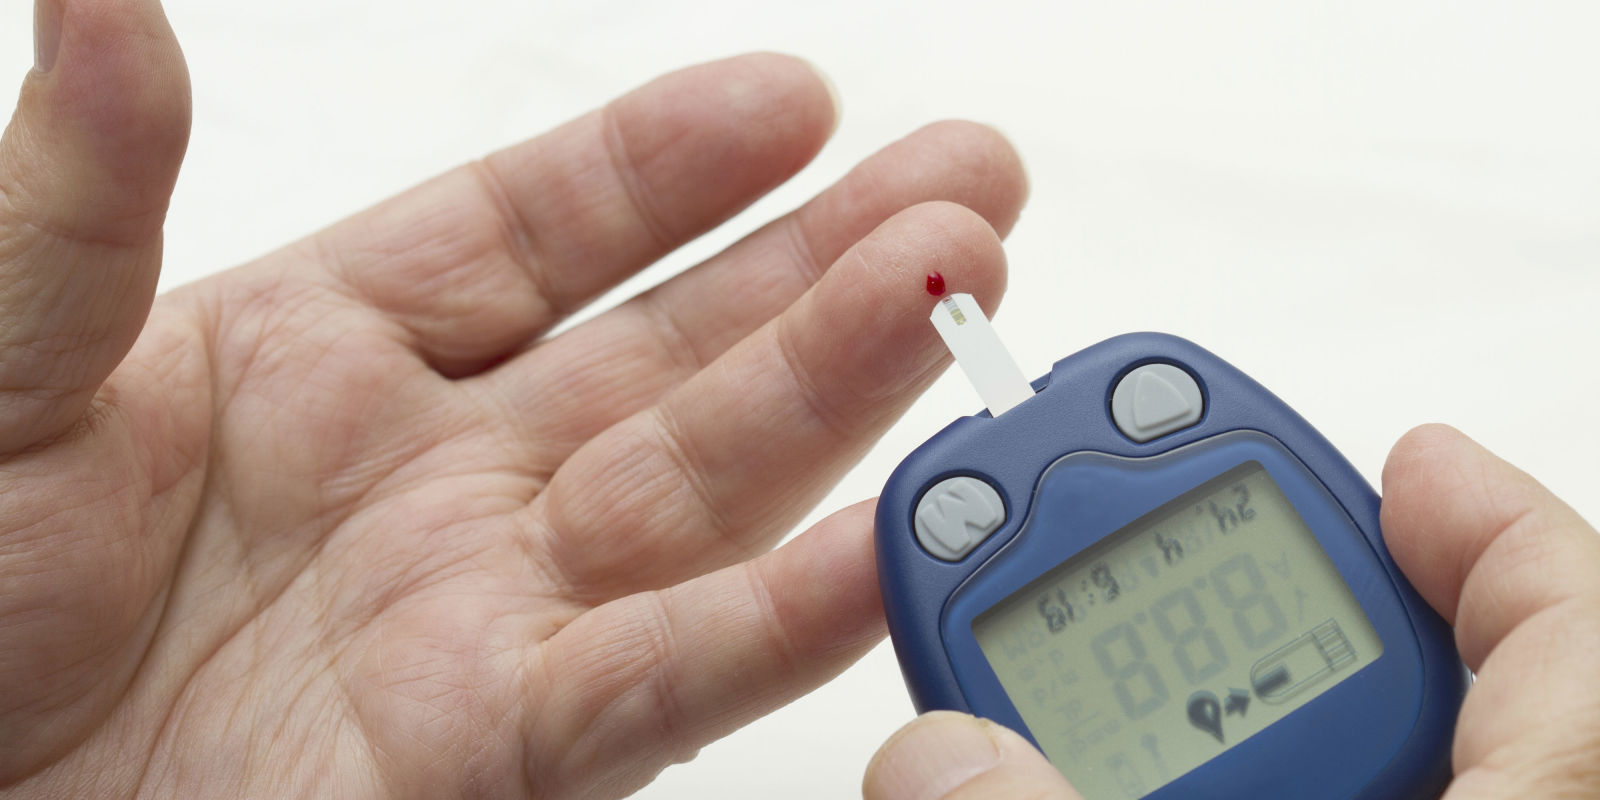 hypoglycaemia (low blood glucose) in non-diabetic people, Skeleton